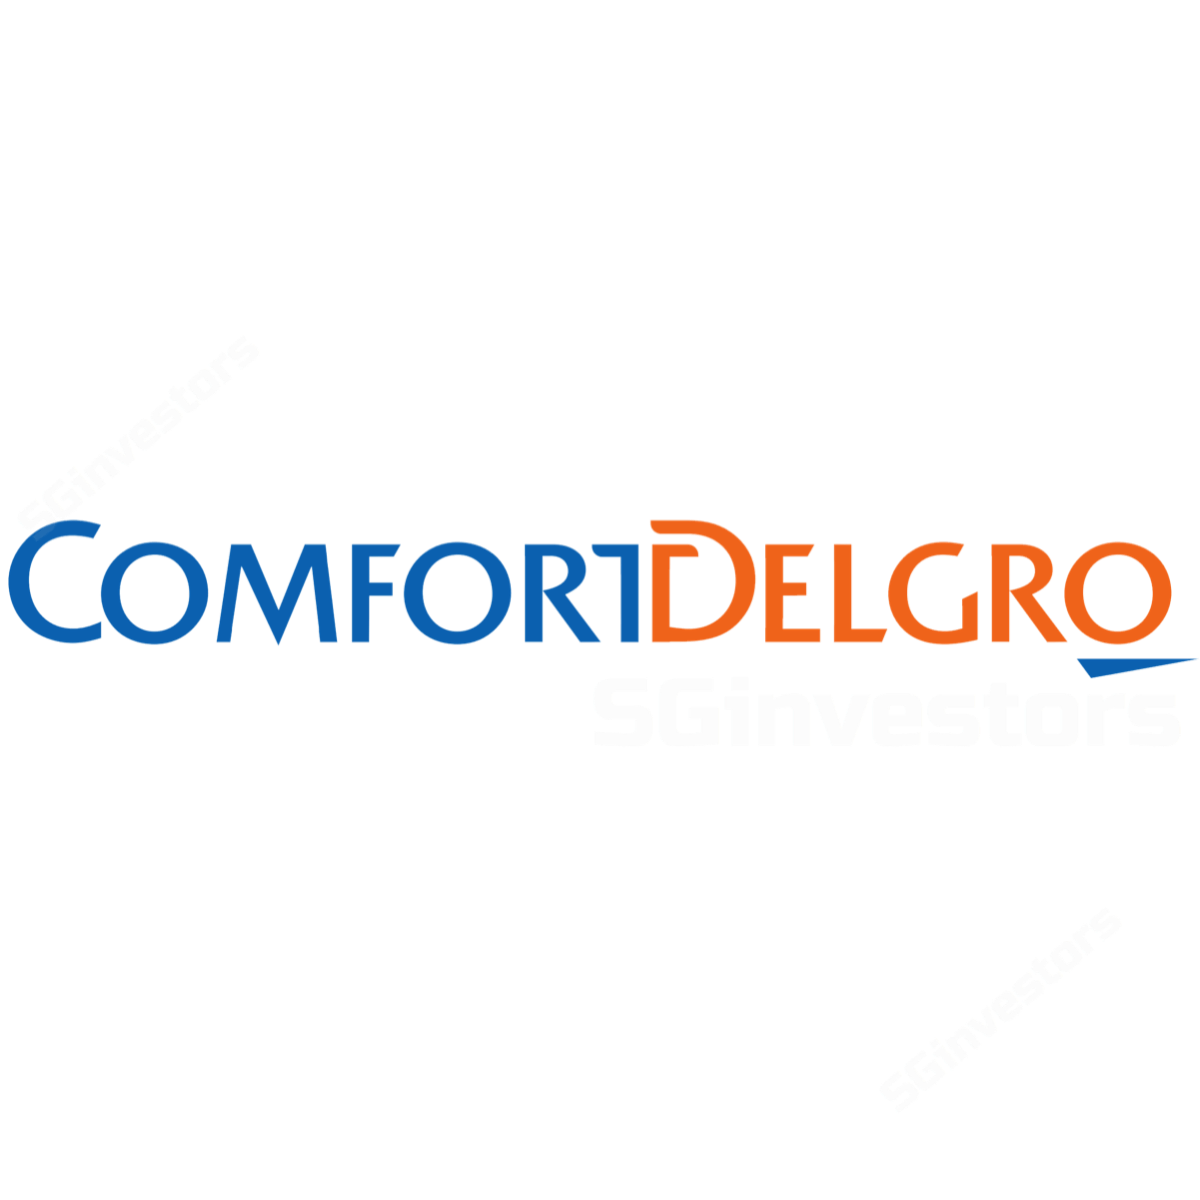 ComfortDelGro Corp Ltd - Phillip Securities 2016-11-14: Bottom line growth maintained